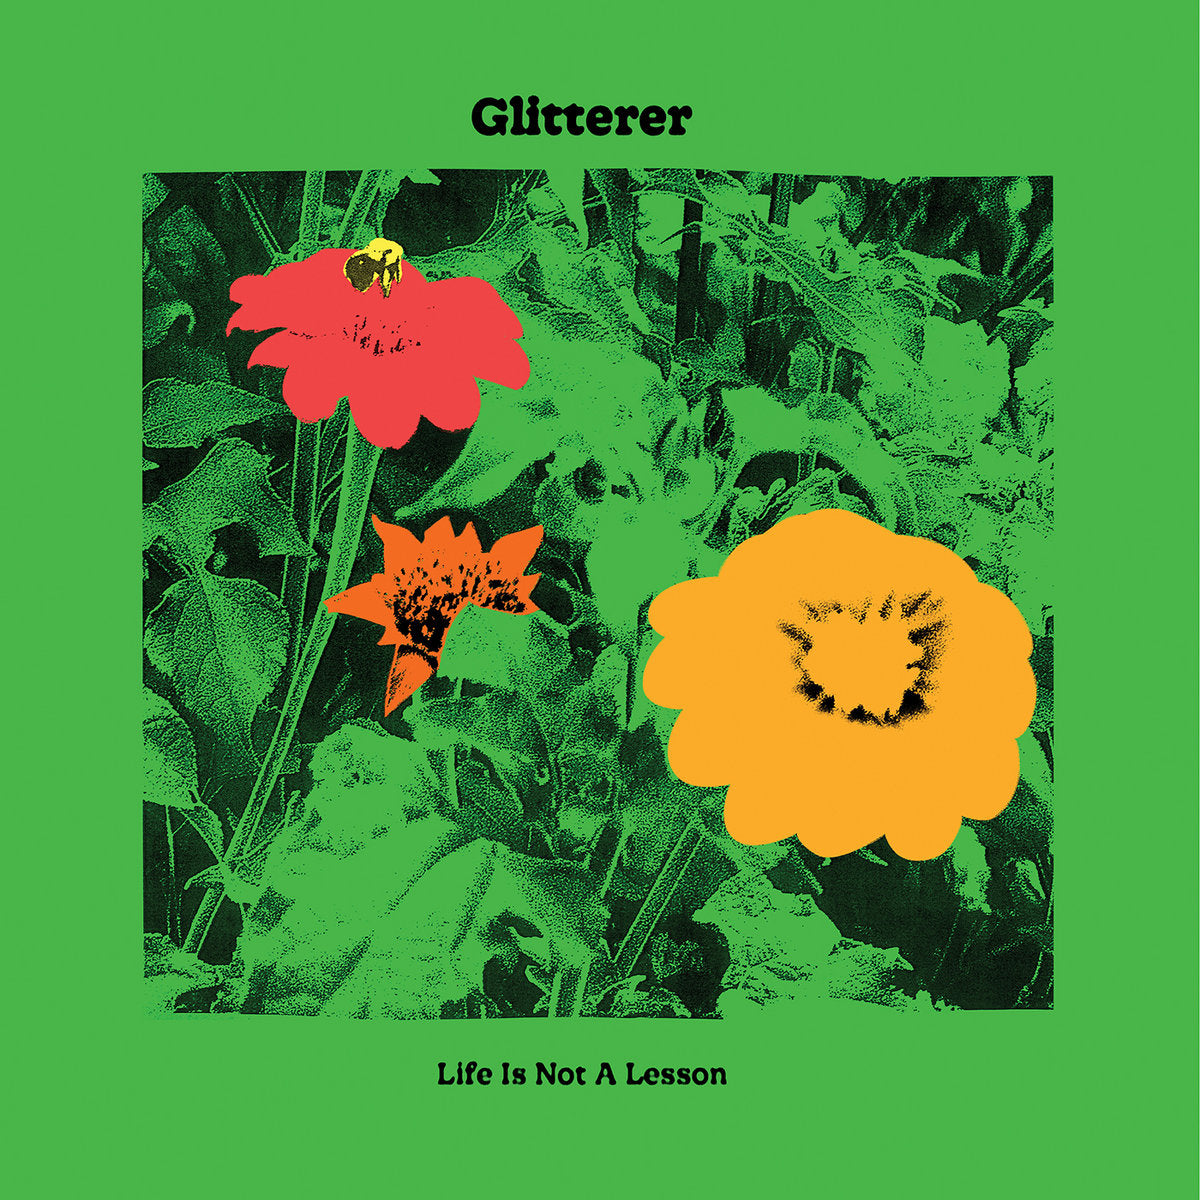 Glitterer - Life Is Not A Lesson LP - Vinyl